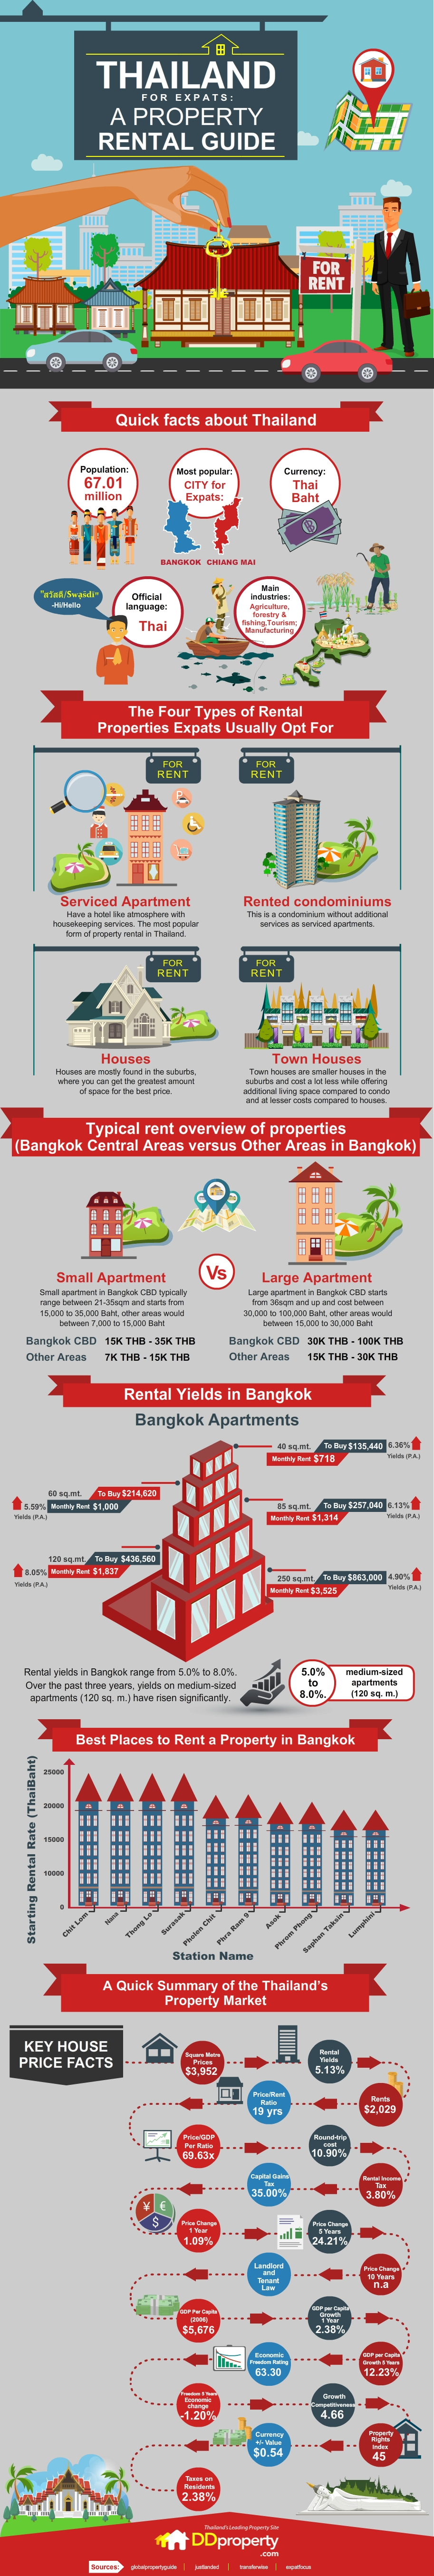 DDProperty-Thailand-for-Expats-A-Property-Rental-Guide